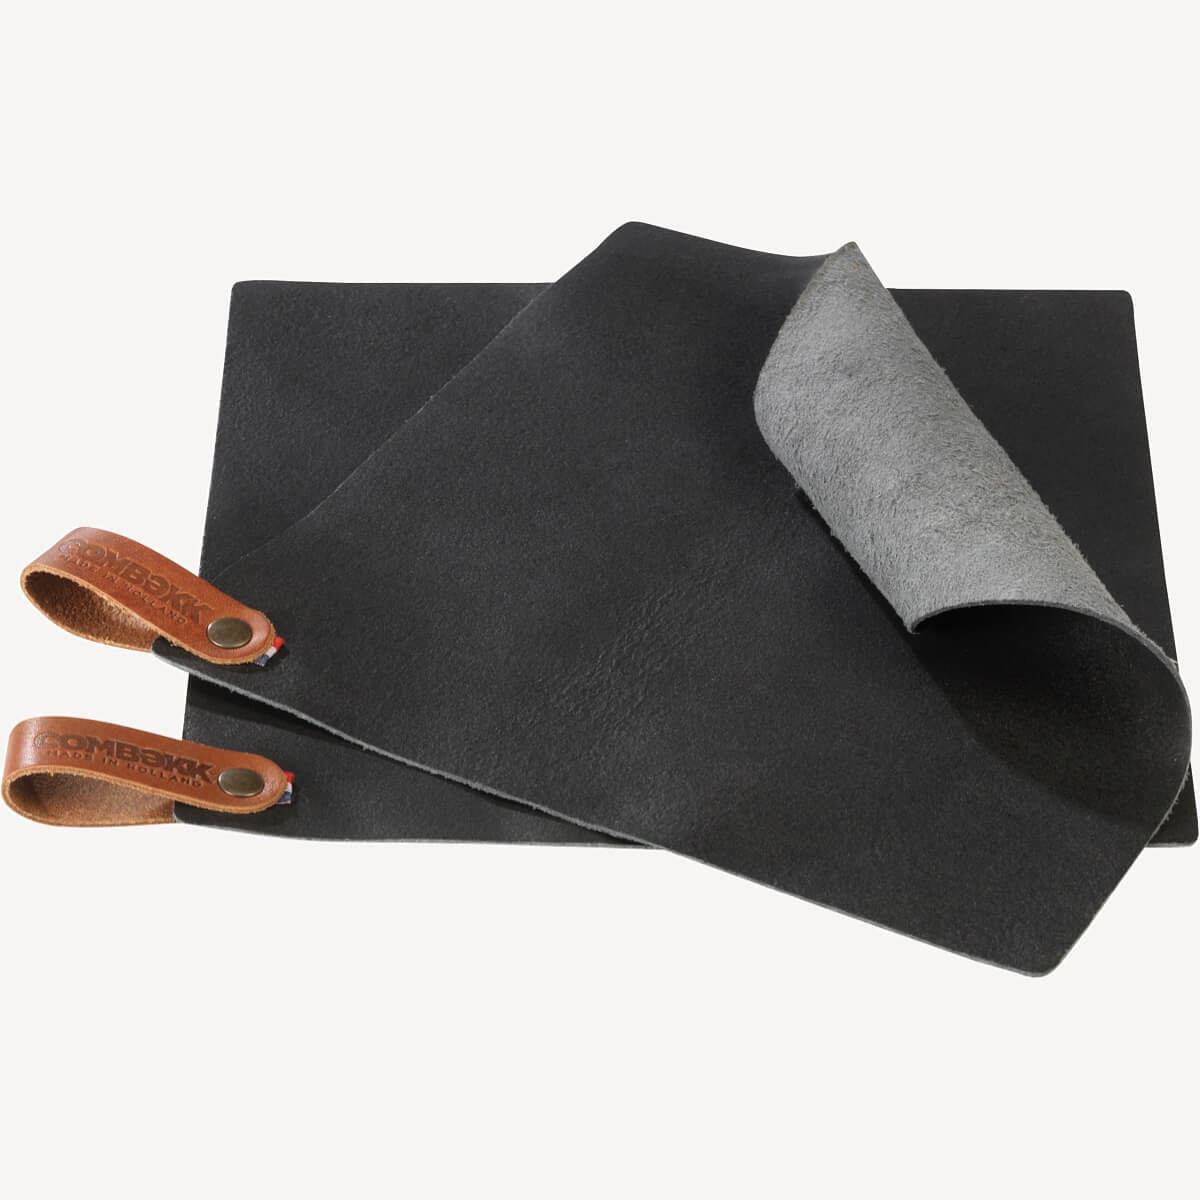 Pot Holder Leather - set of 2 Black